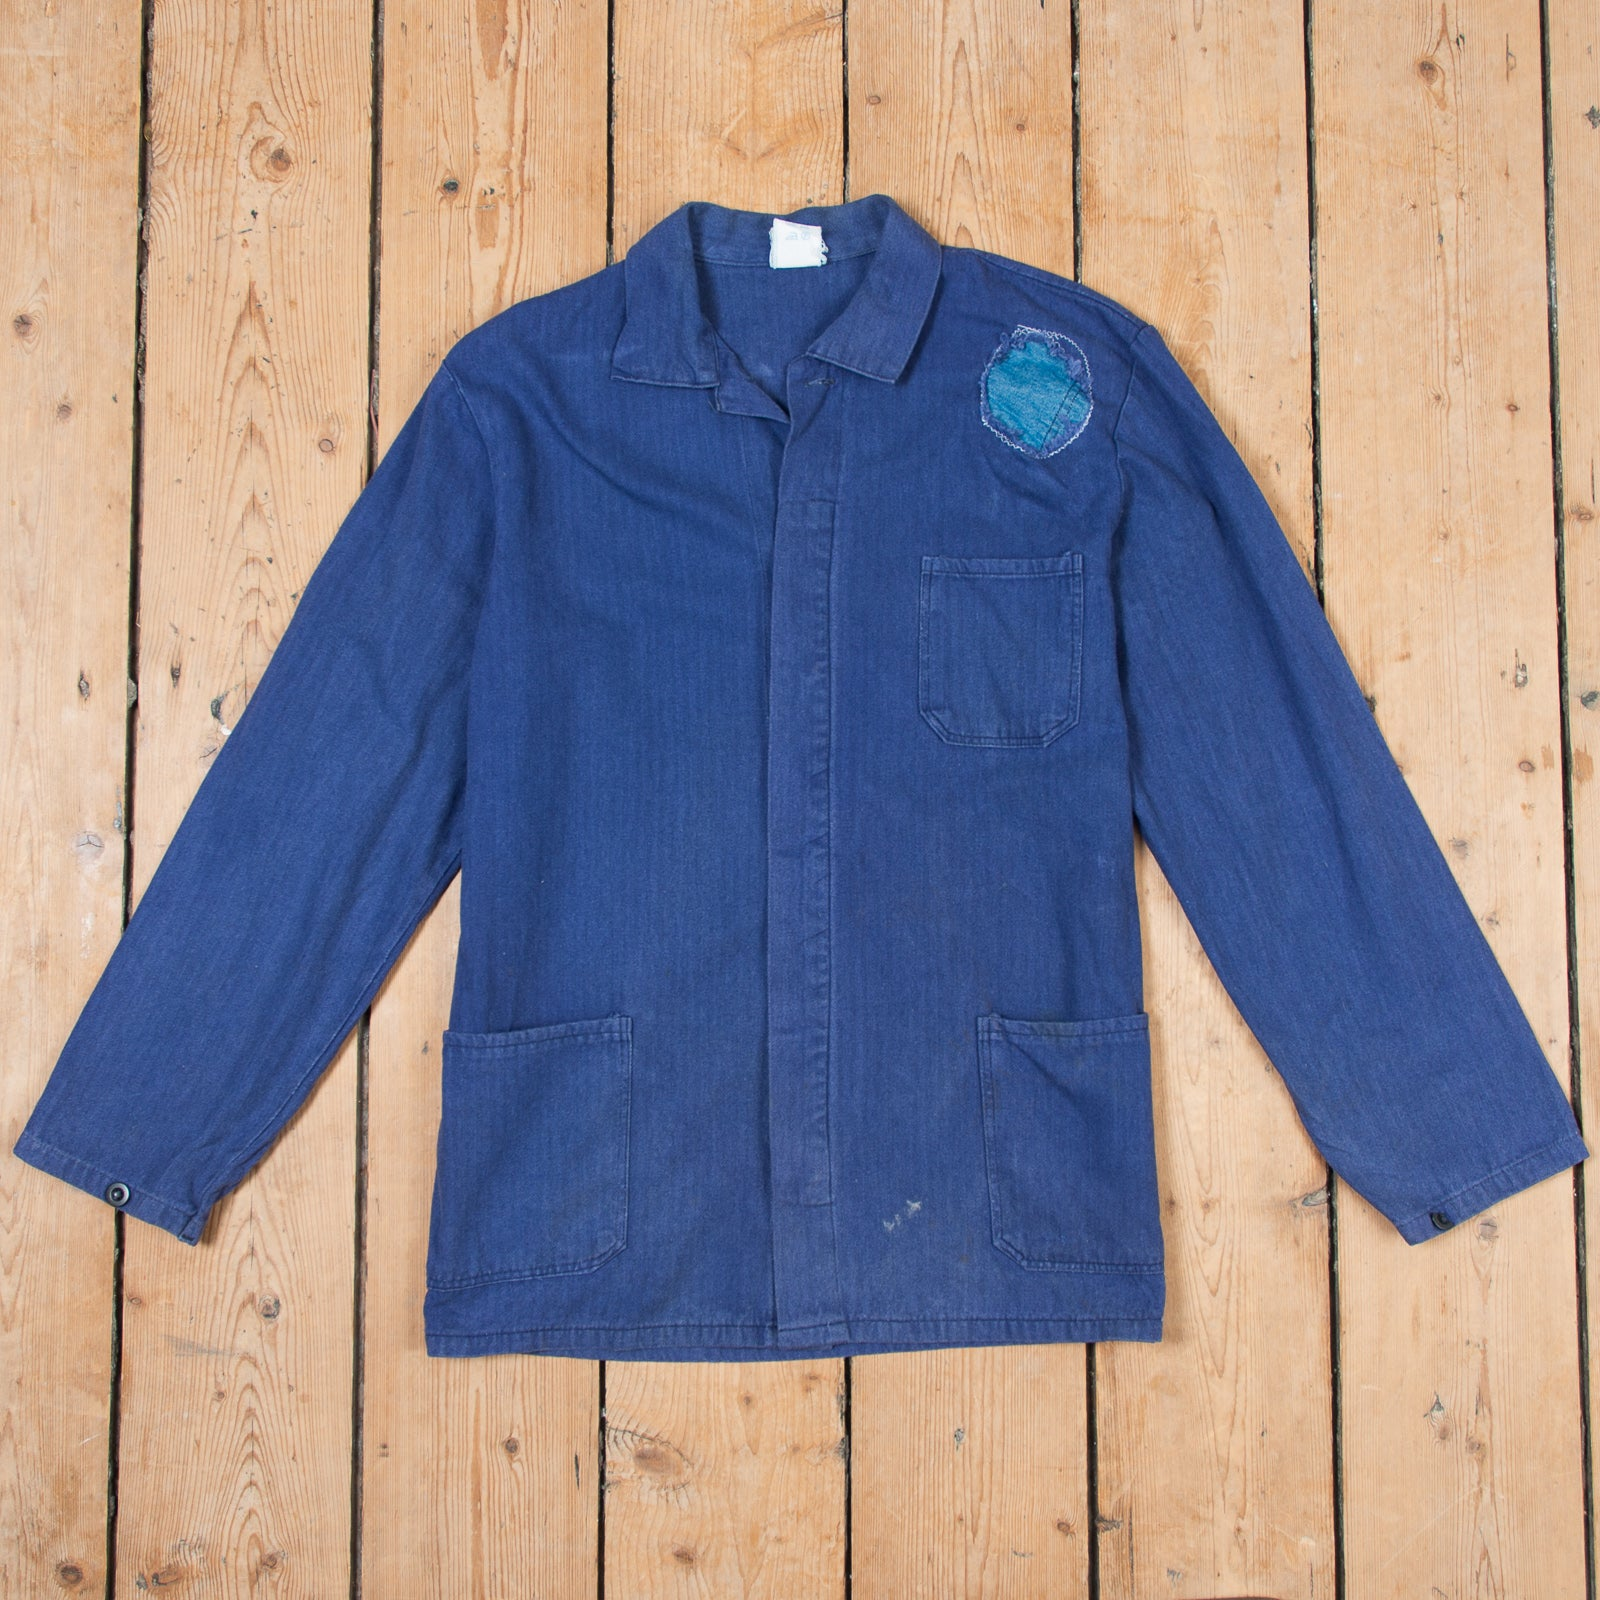 Patched Blue Workers Jacket